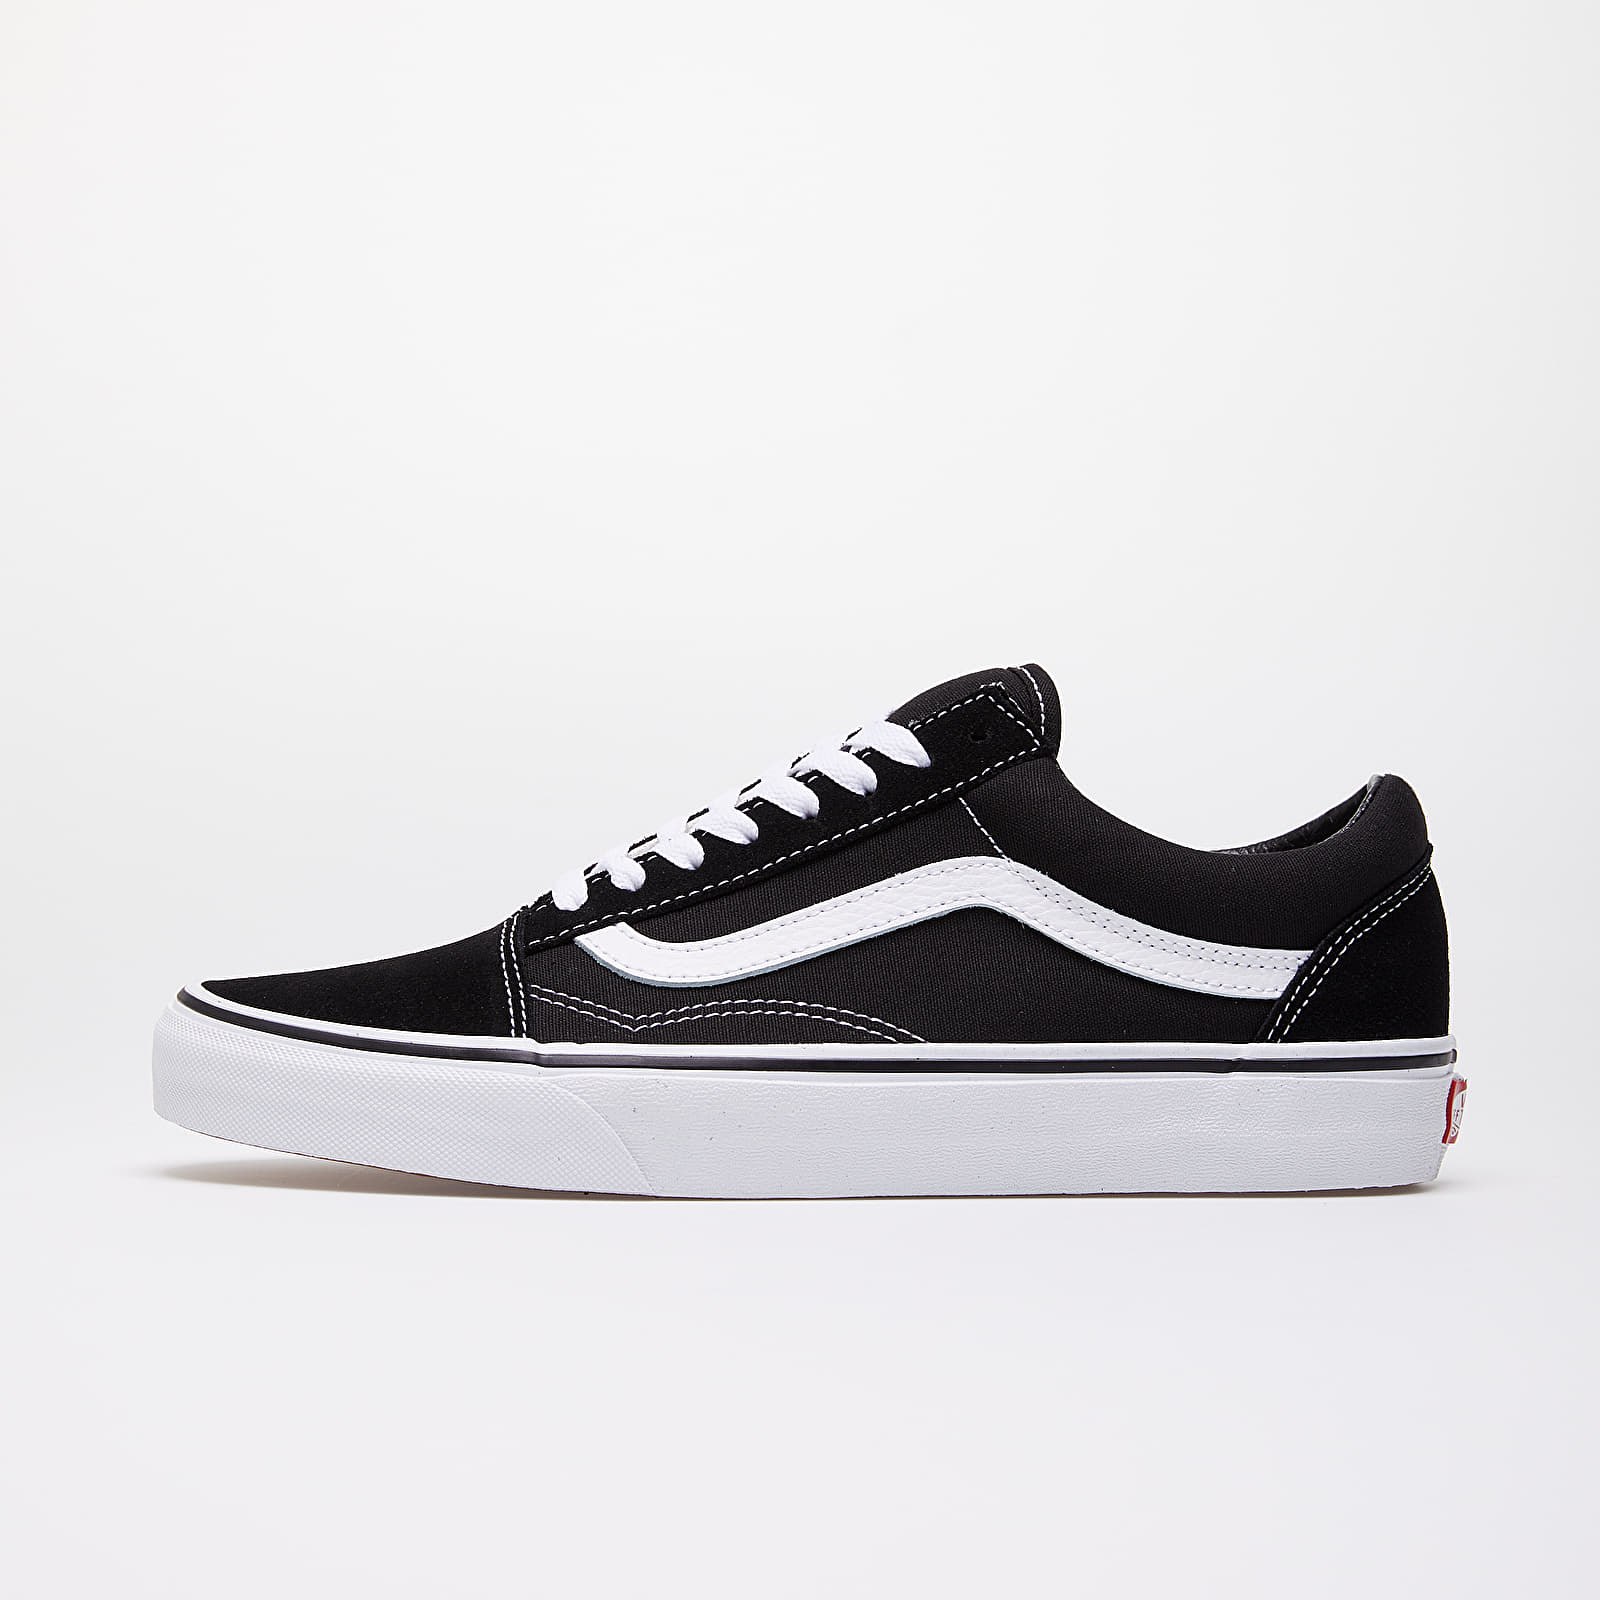 Men's shoes Vans Old Skool Black